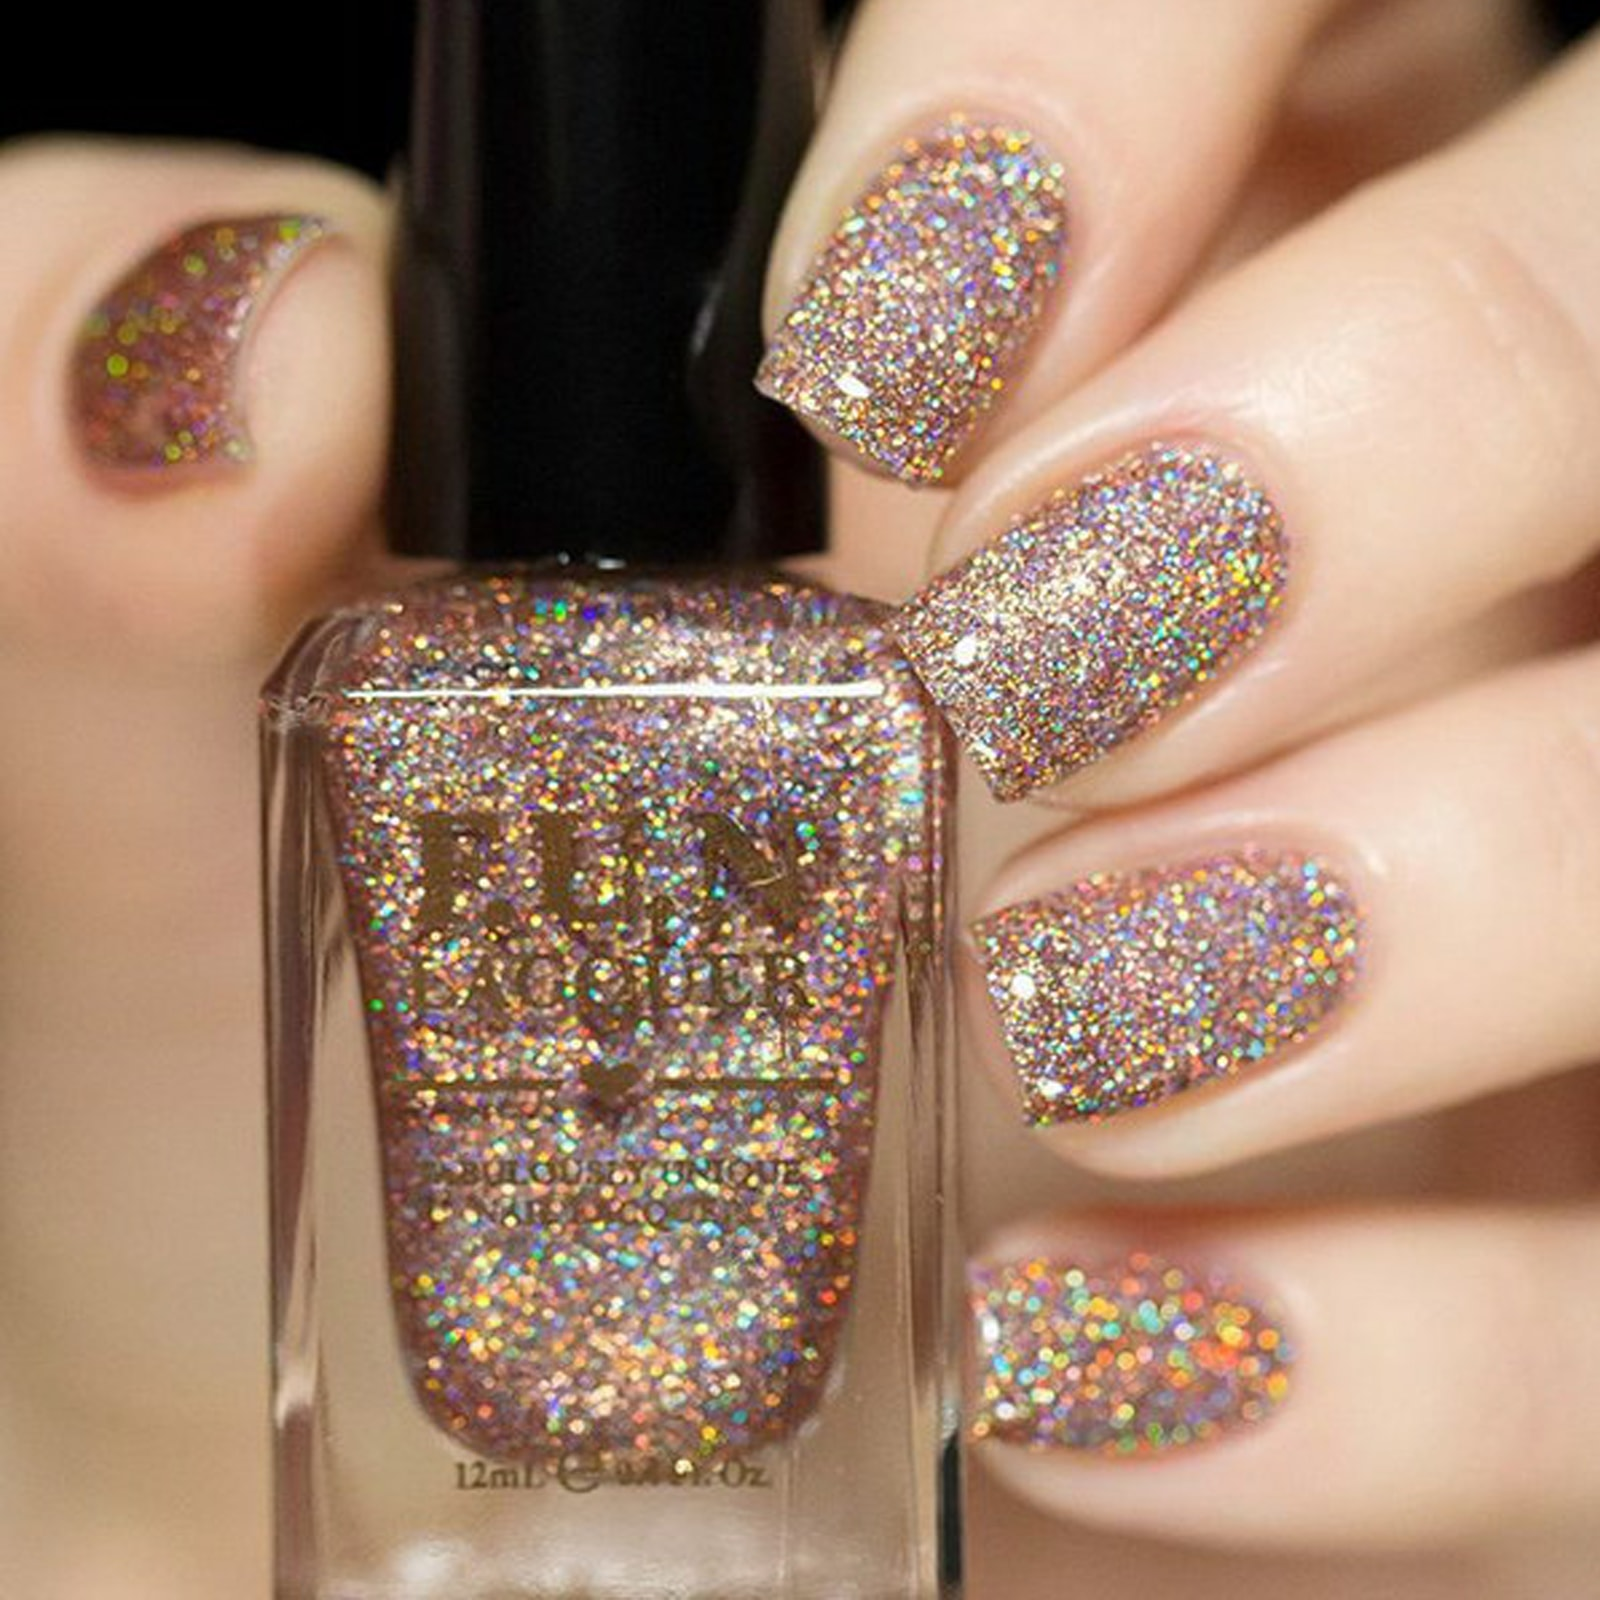 bronze-holographic-glitter-nail-polish-with-stylish-look